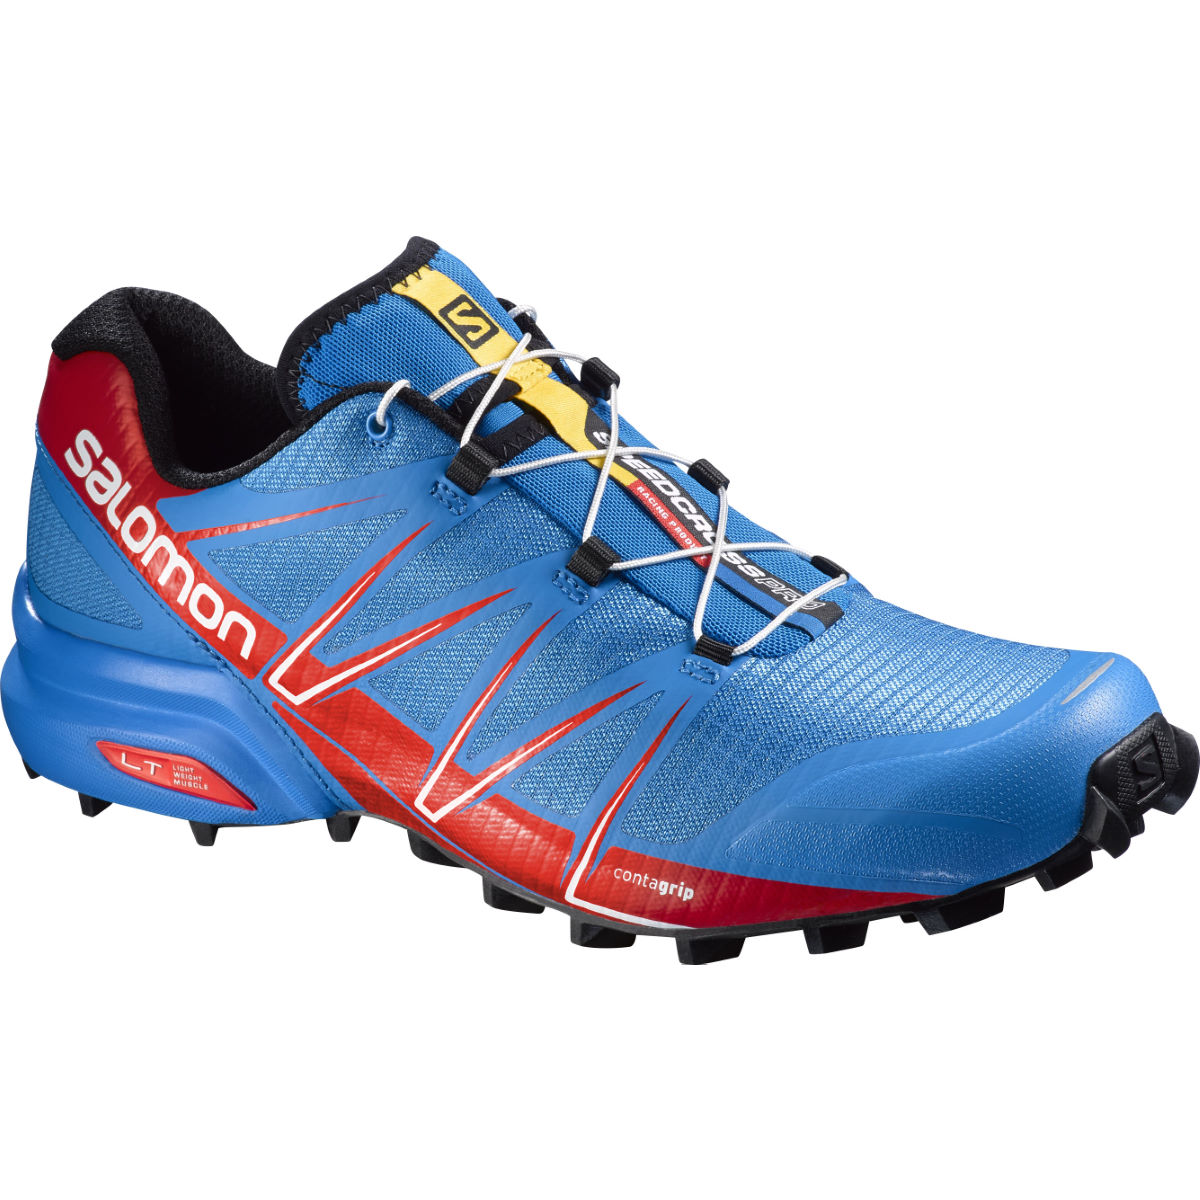 Chaussures Salomon Speedcross Pro (AH16) - 10 UK Blue/Red Chaussures de running trail